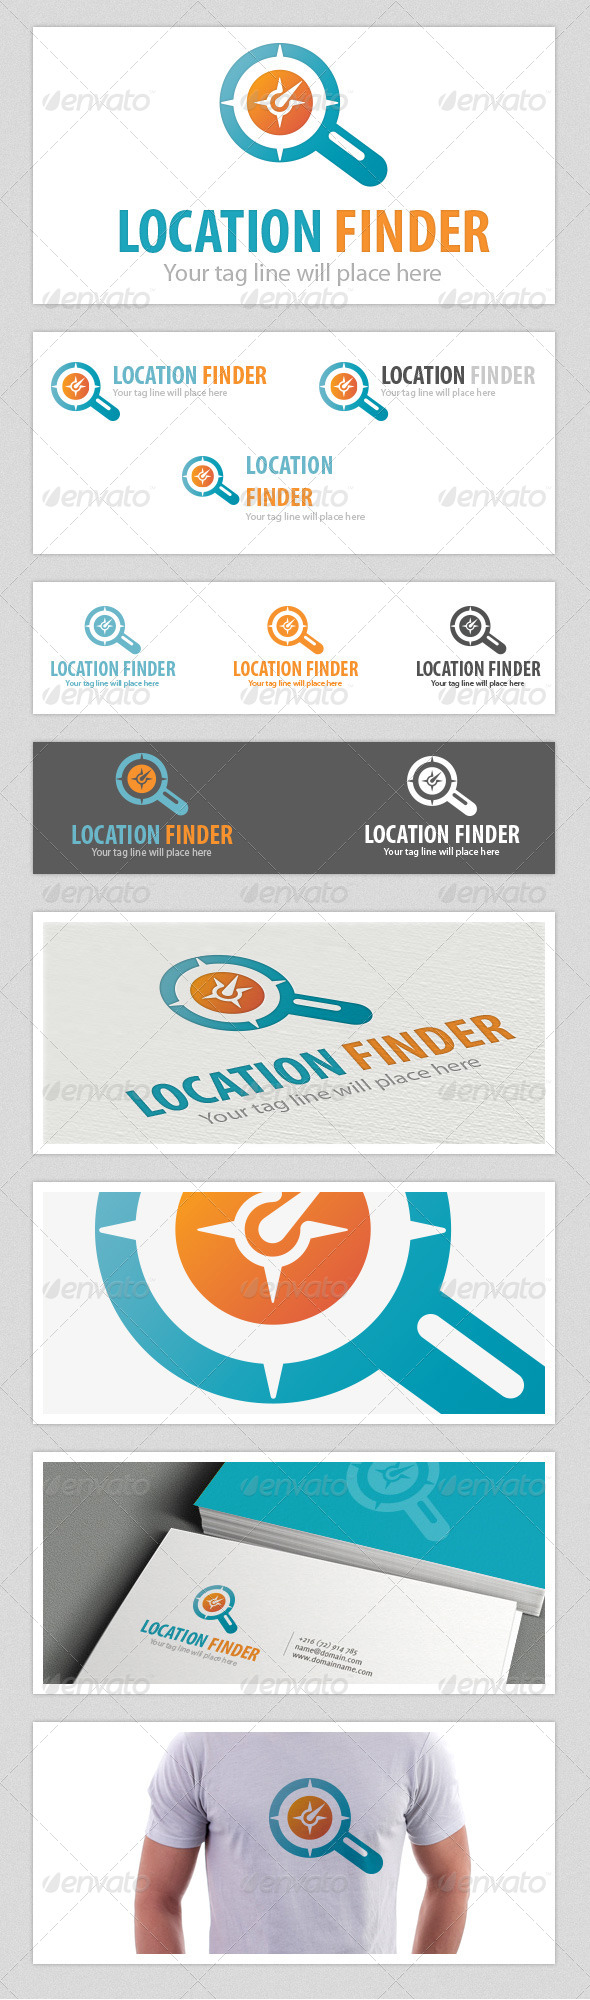 Location Finder Logo - Vector Abstract